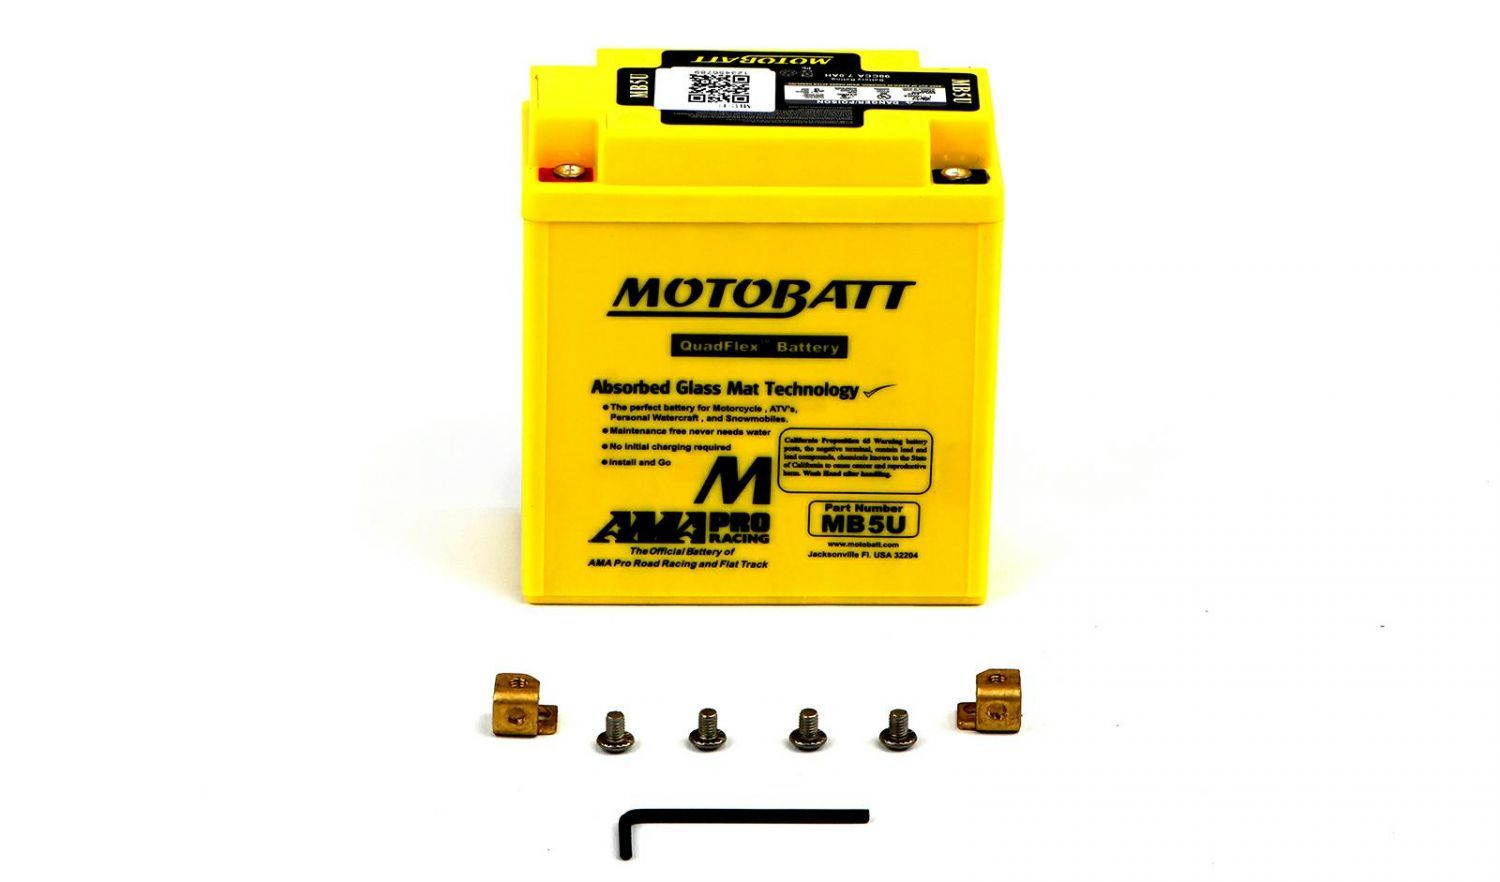 Motobatt Batteries - 501051MY image